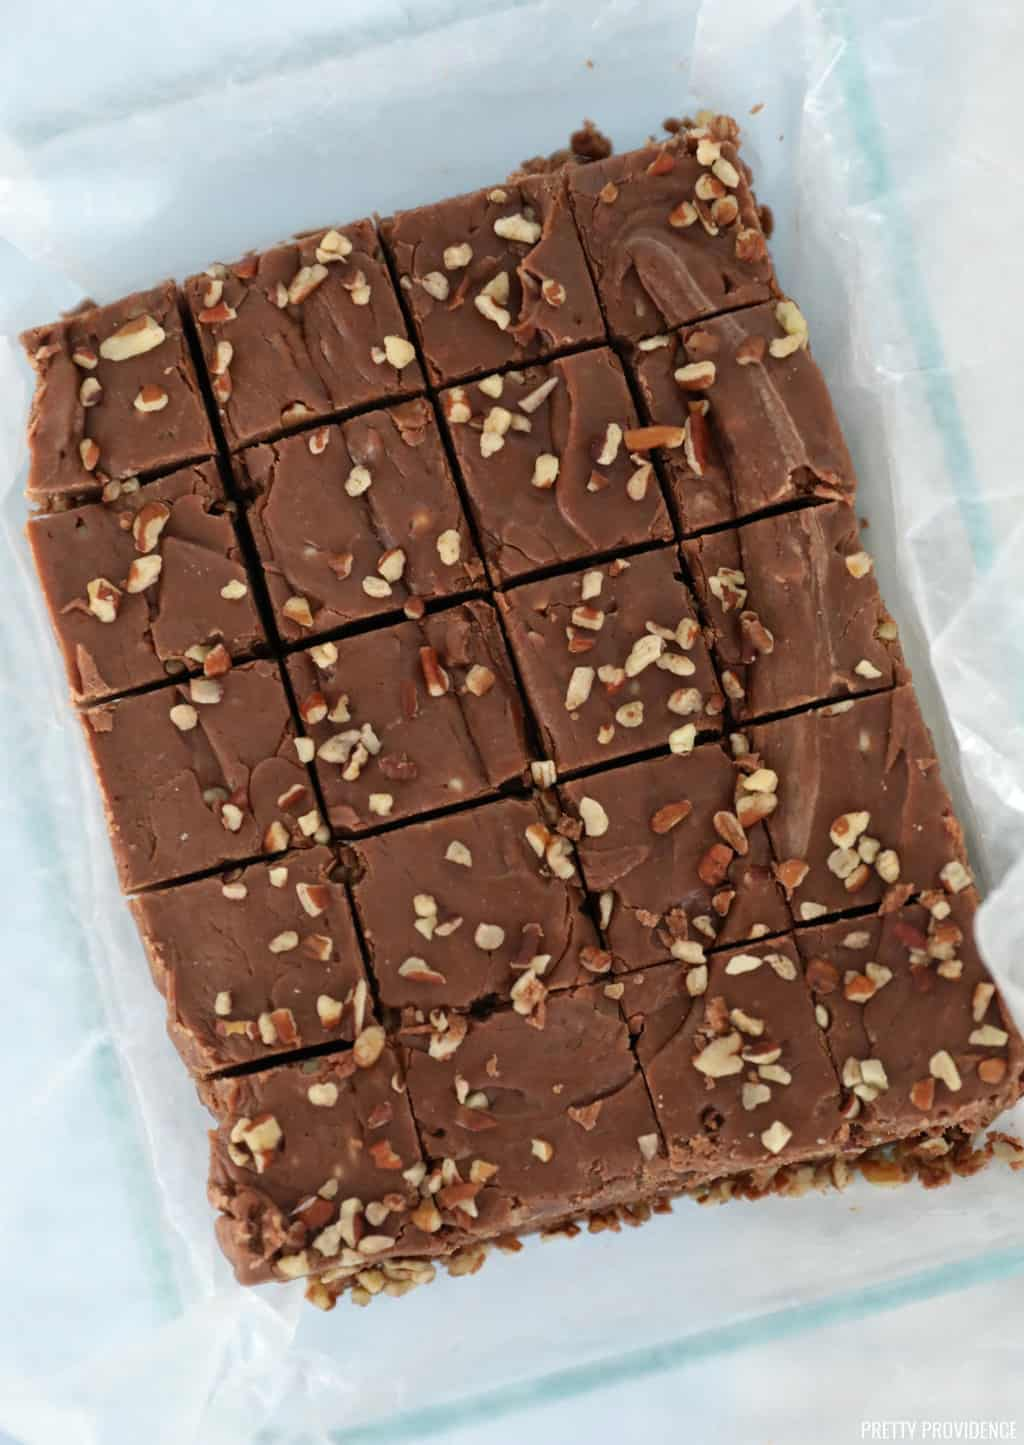 Homemade fudge with nuts on top cut into squares on wax paper